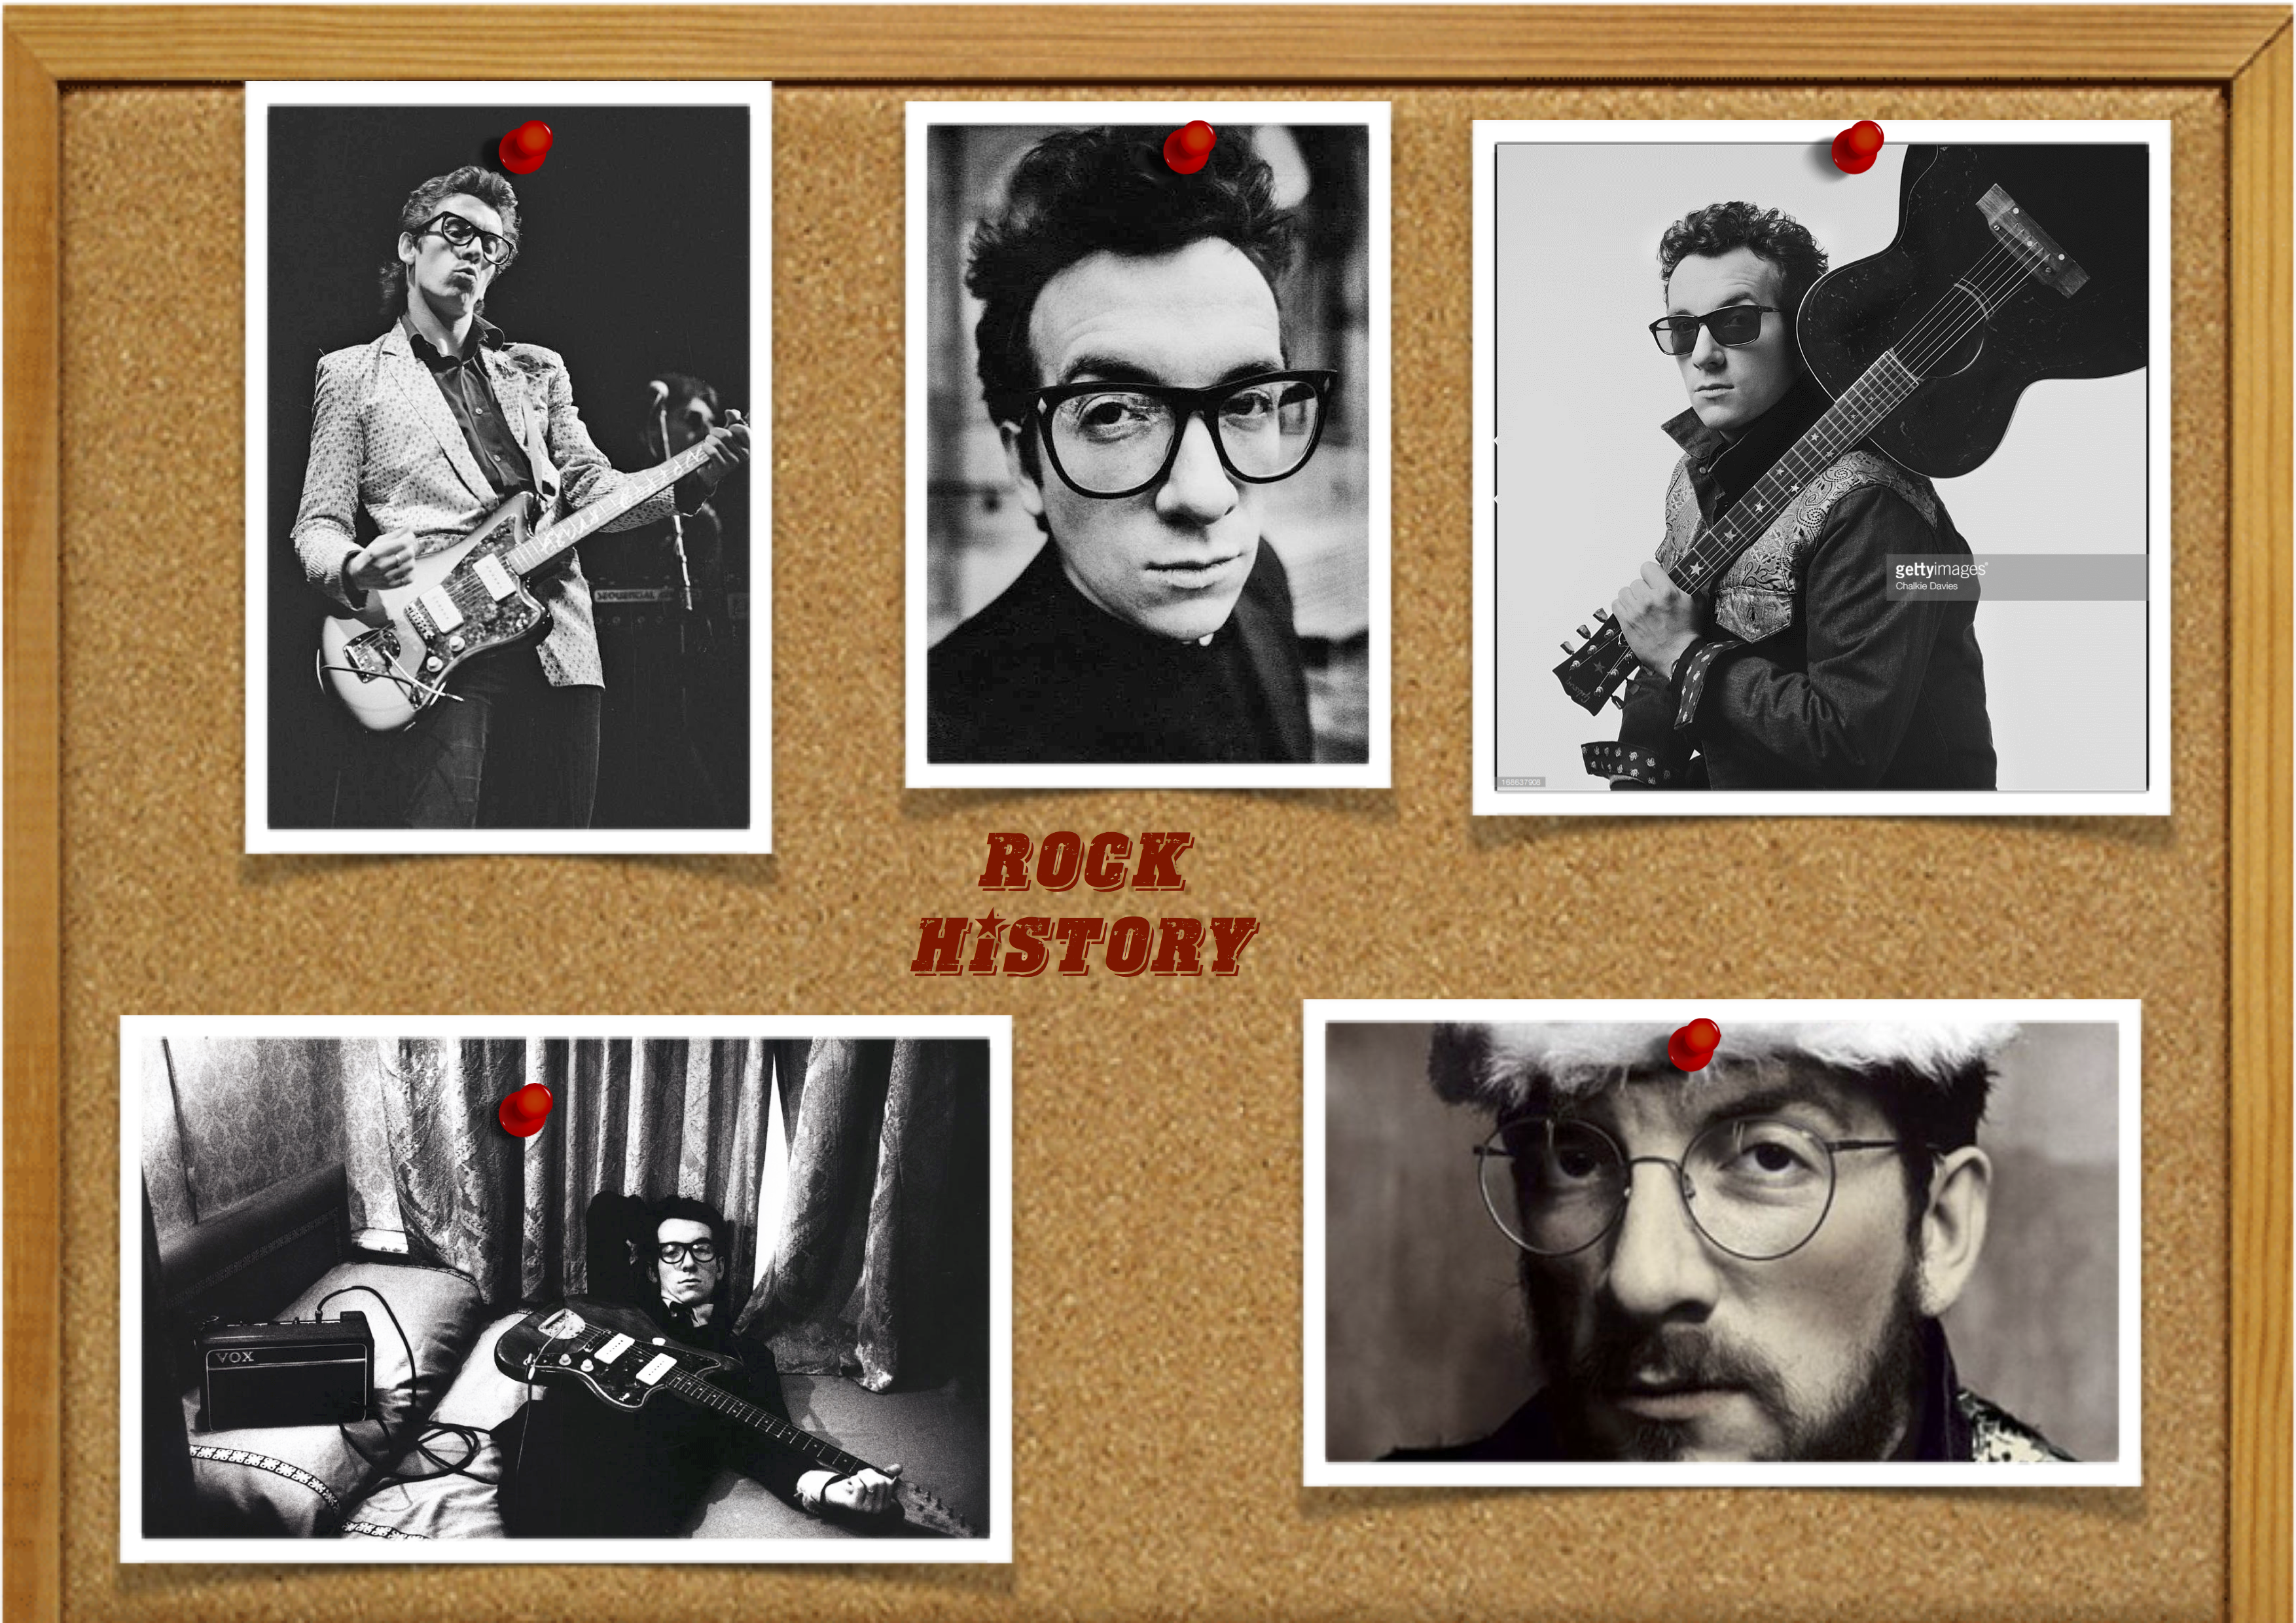 Best Elvis Costello Songs of All Time